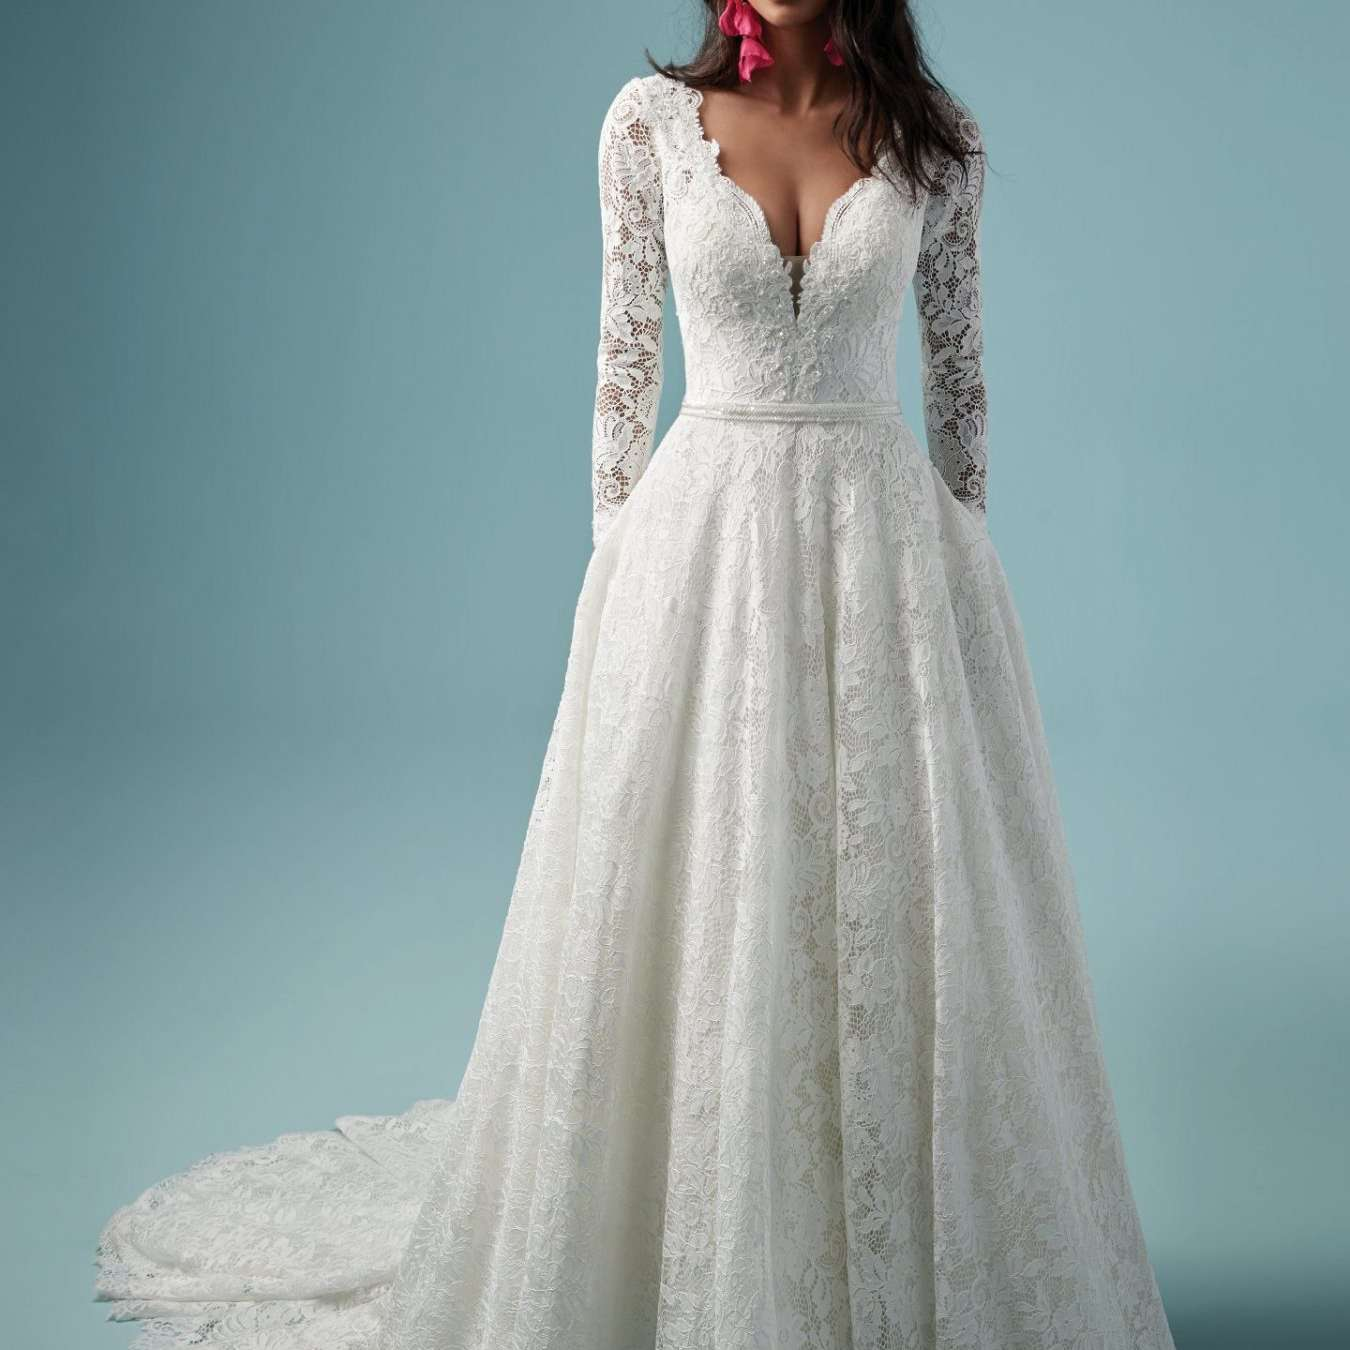 45 Wedding Dresses With Pockets